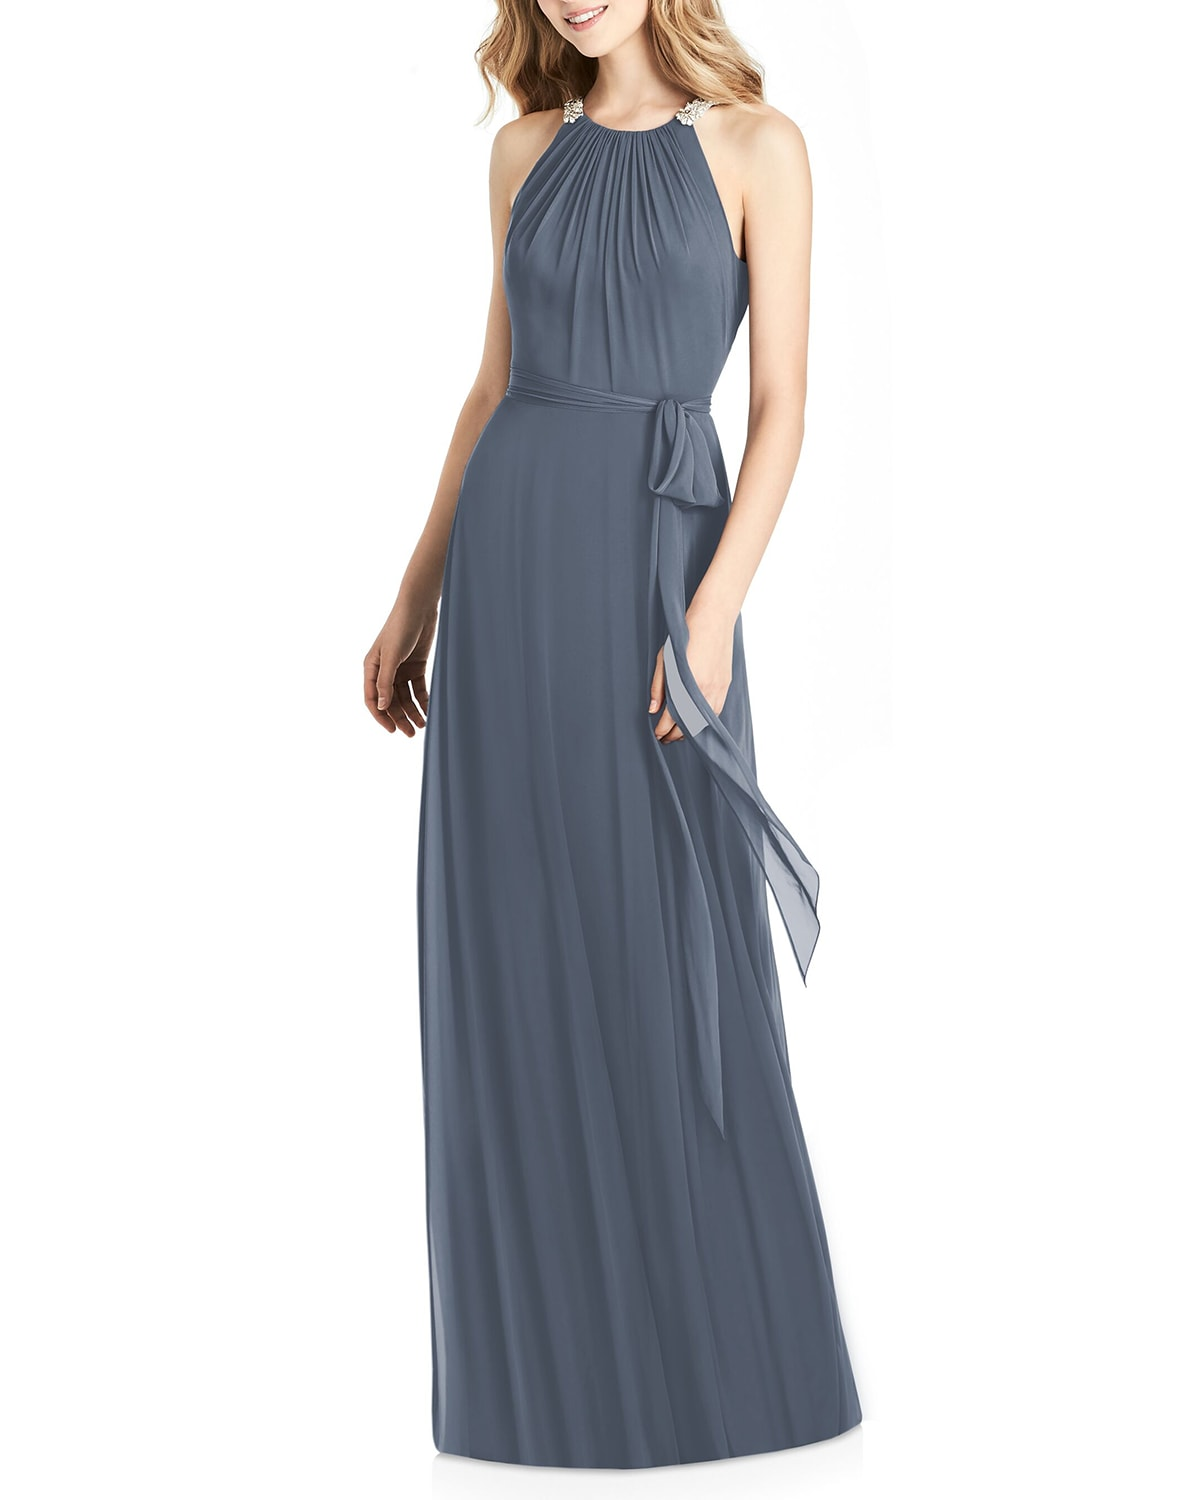 Luxe Chiffon Halter Gown with Beaded Trim